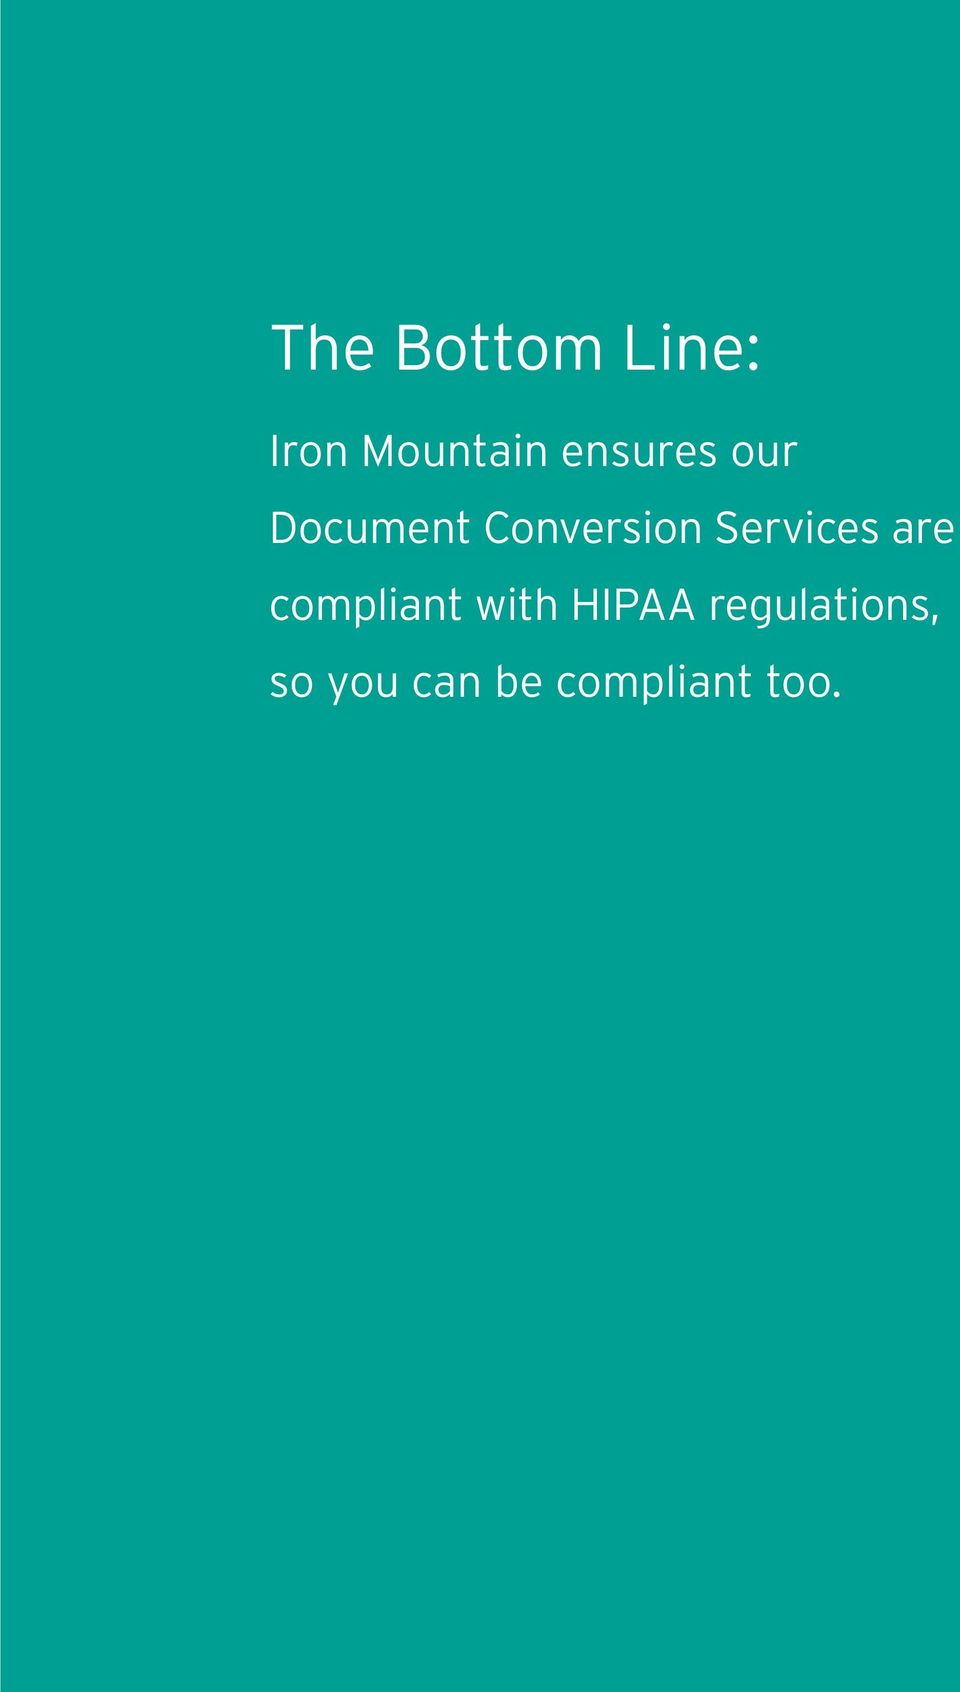 Services are compliant with HIPAA